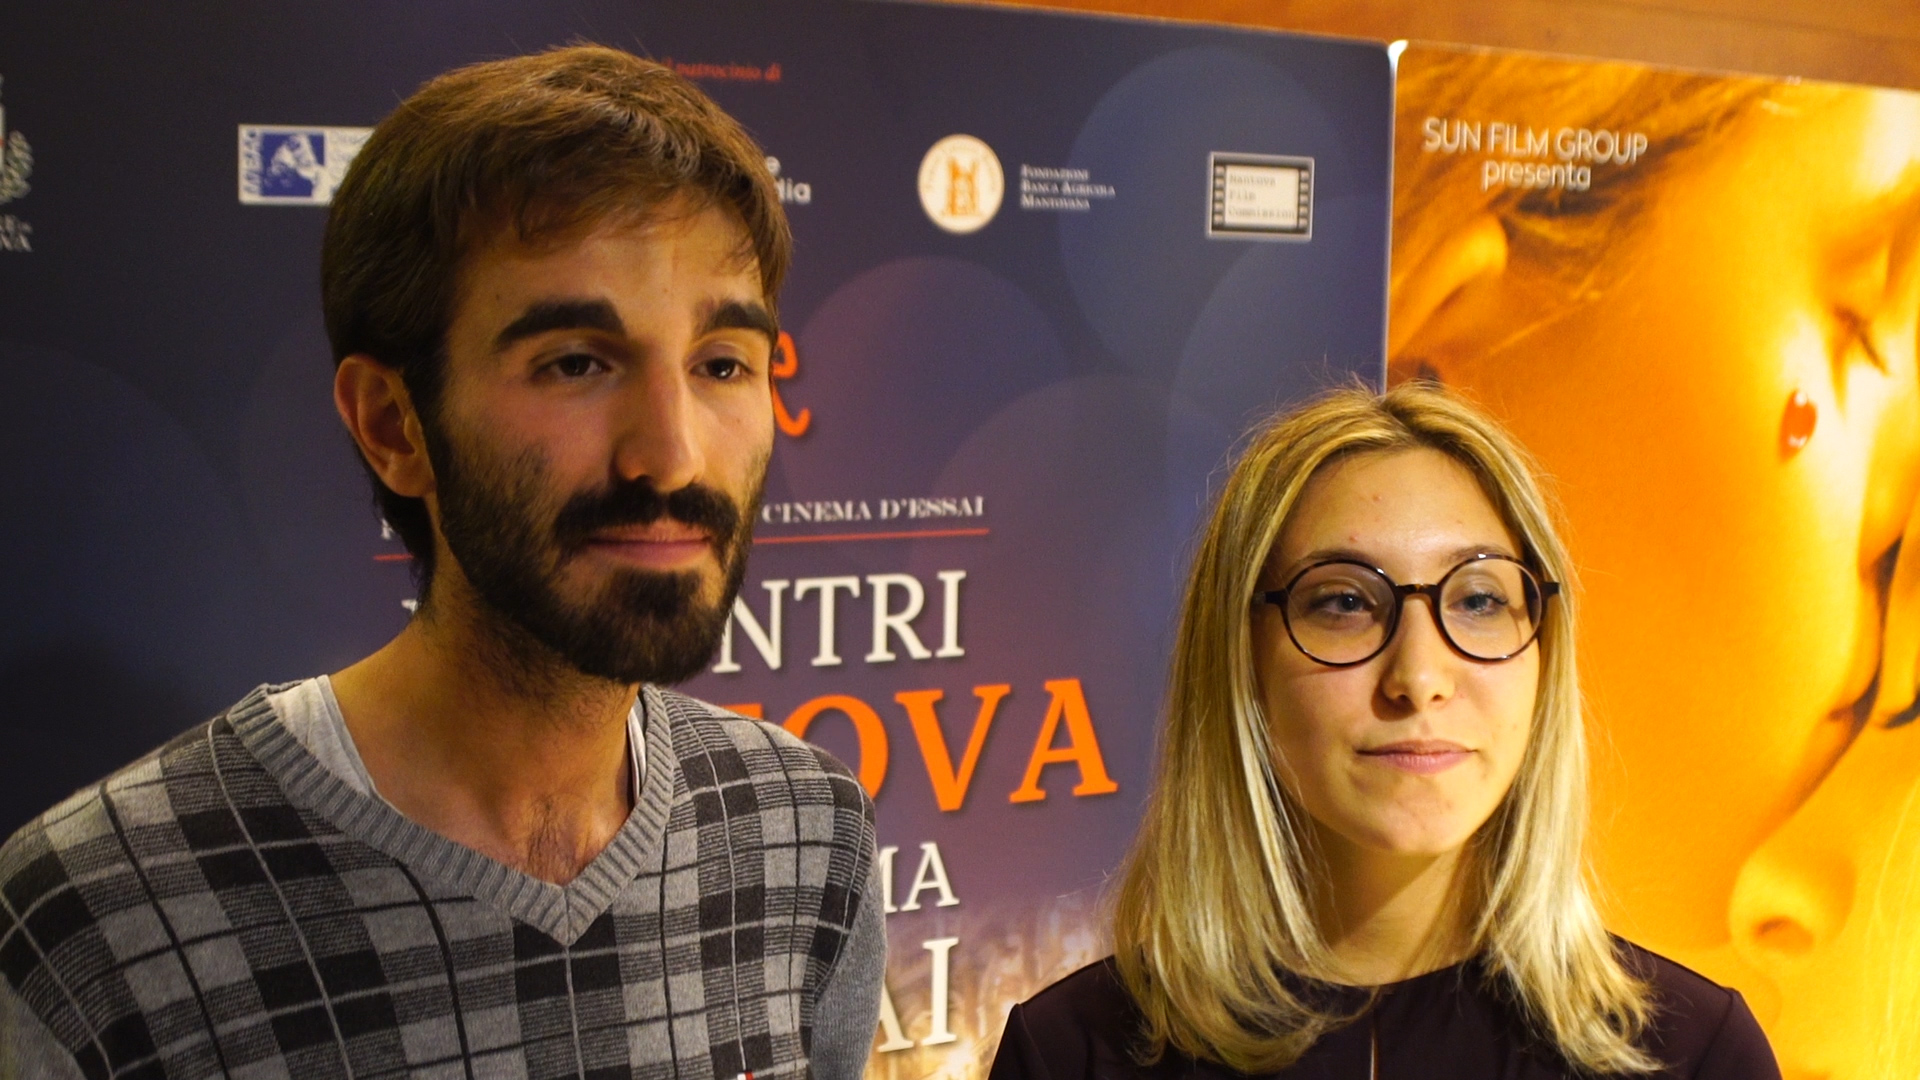 Il giro (d'Italia) dei cinema, in un libro le sale più innovative e originali